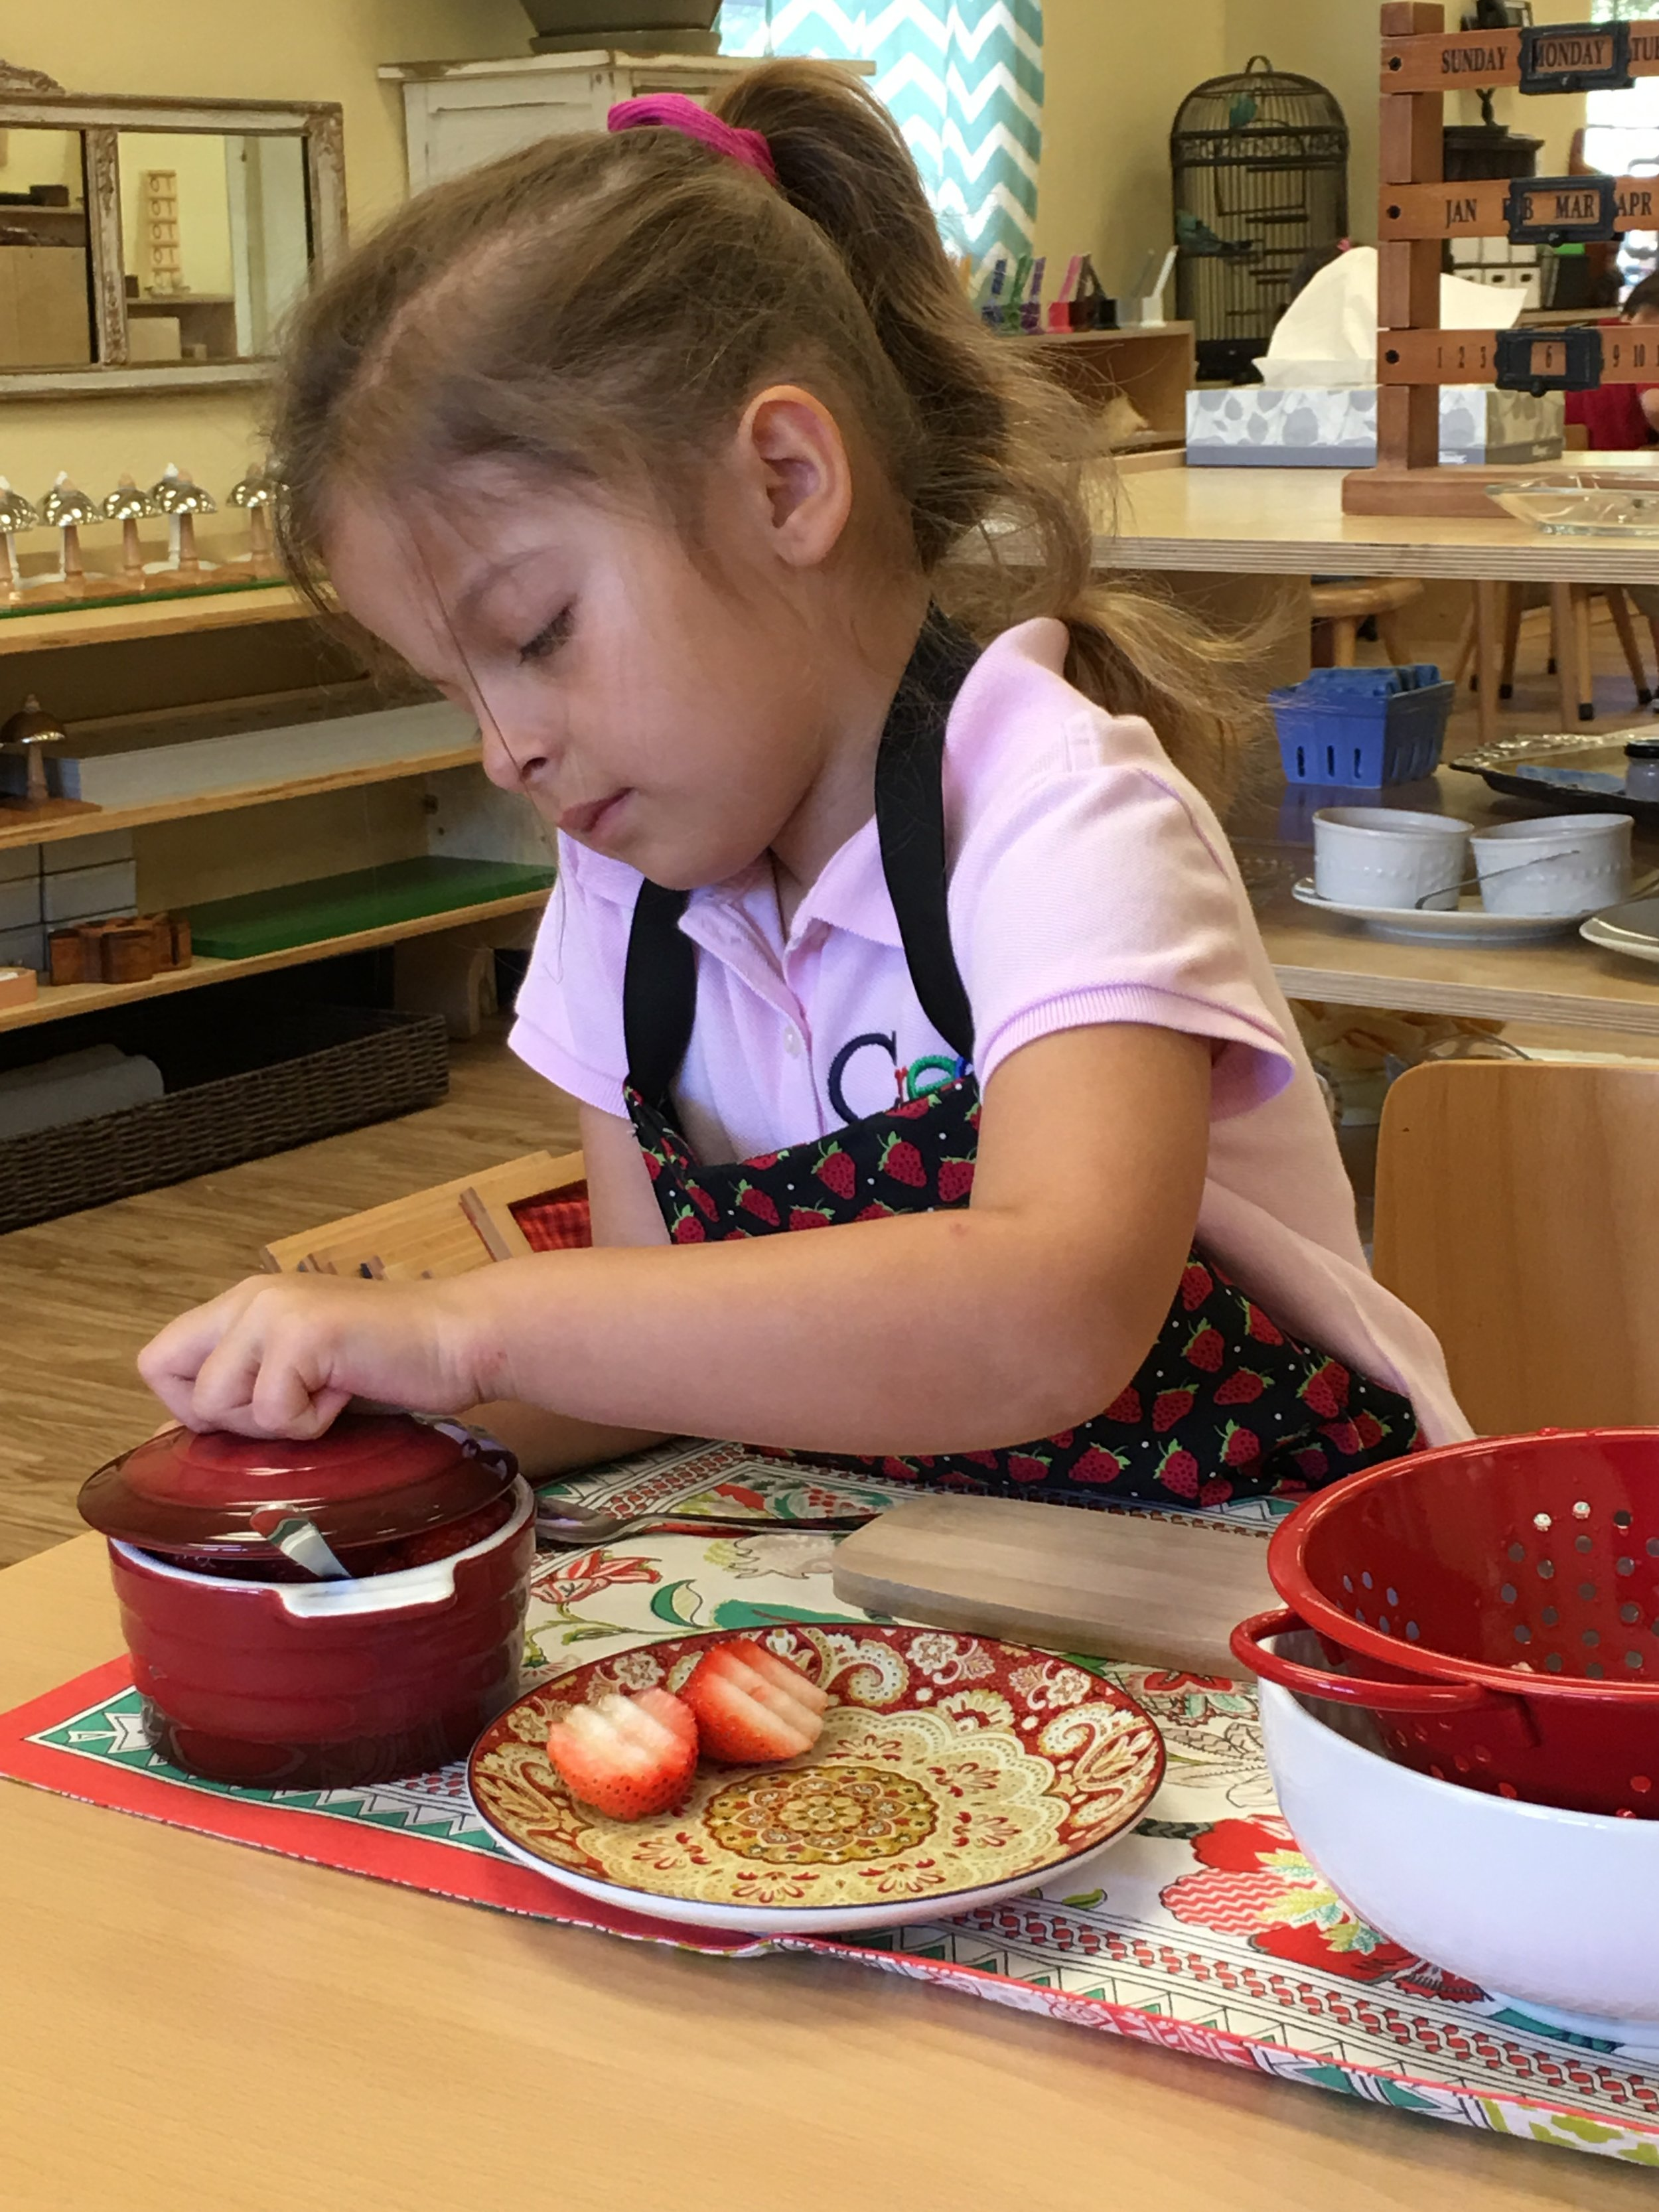 Slicing strawberries to share during snack time